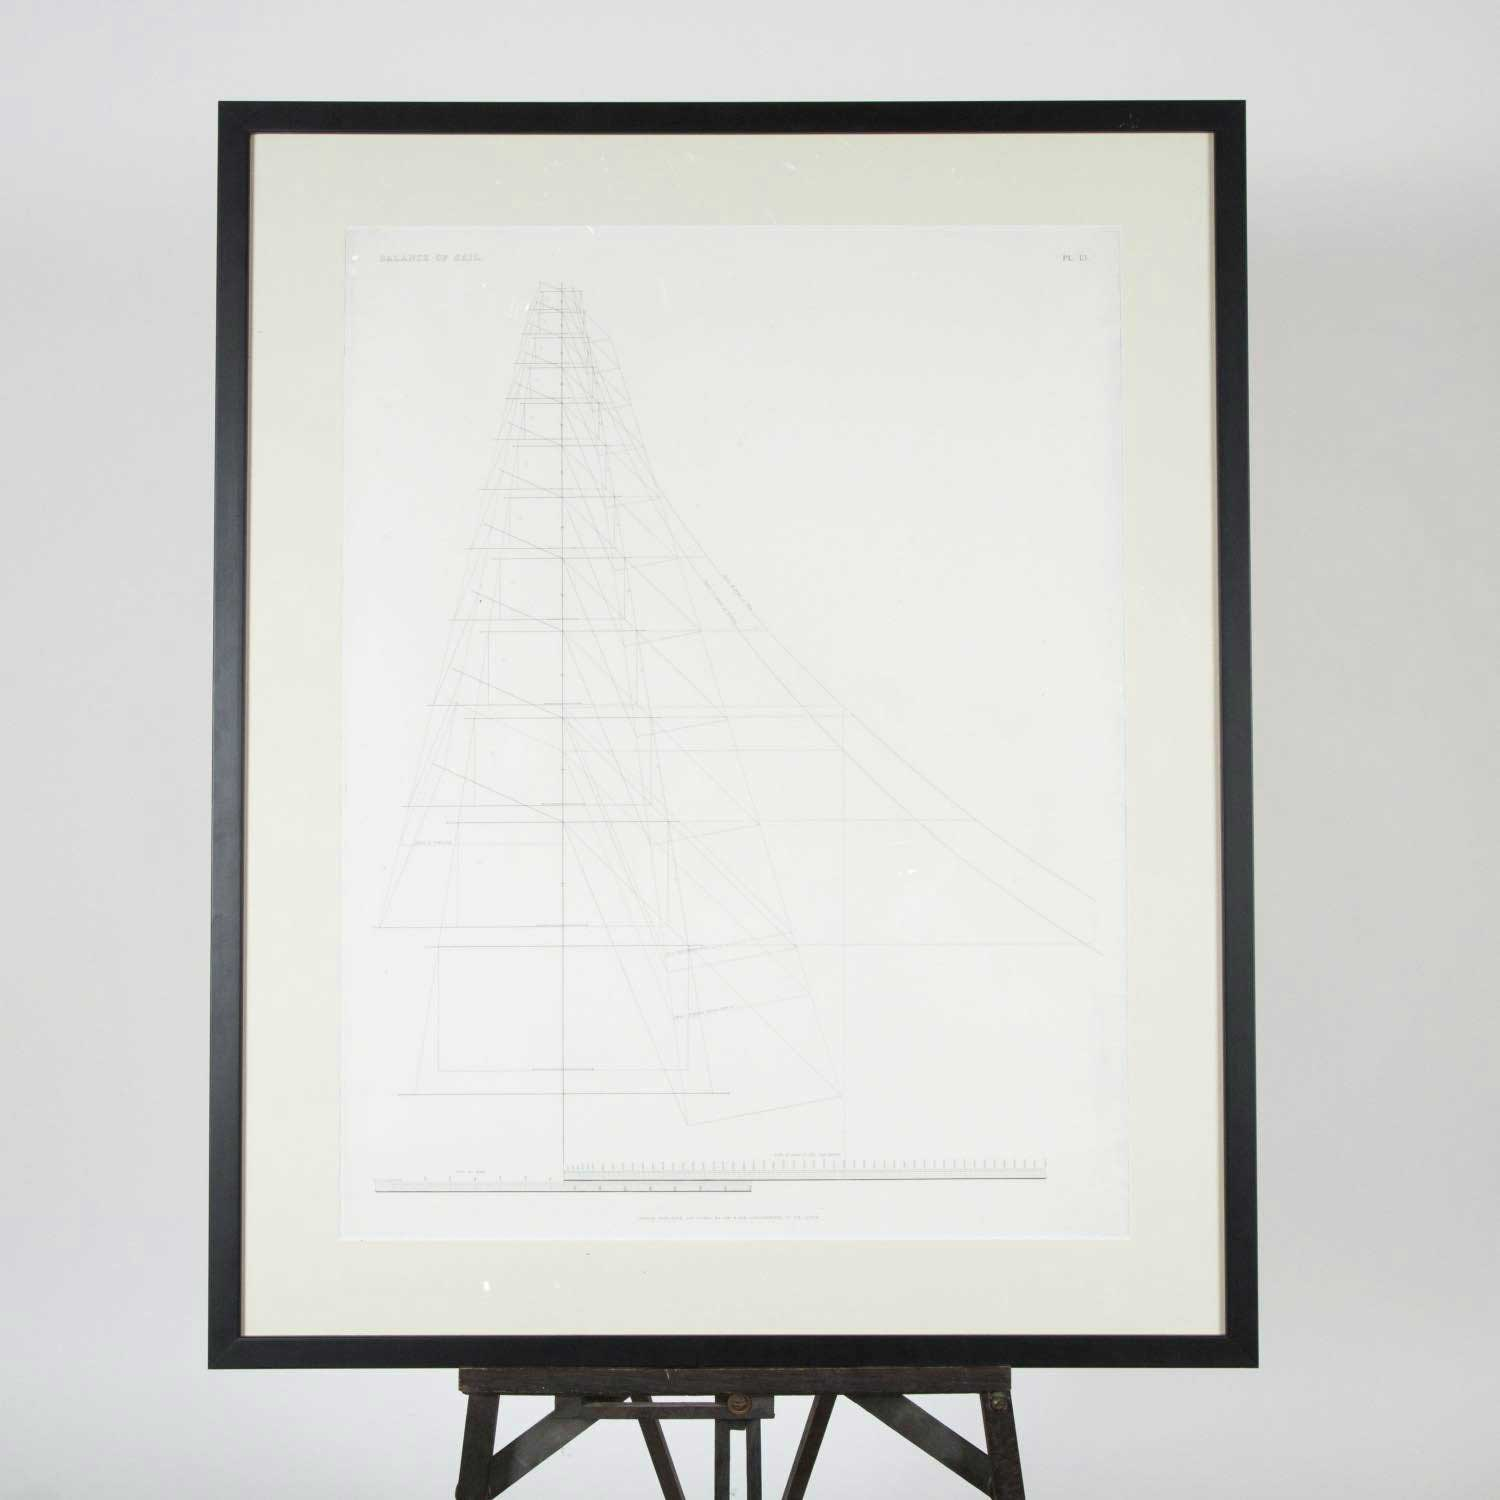 BALANCE OF SAIL - PRINT BY DAY & SON